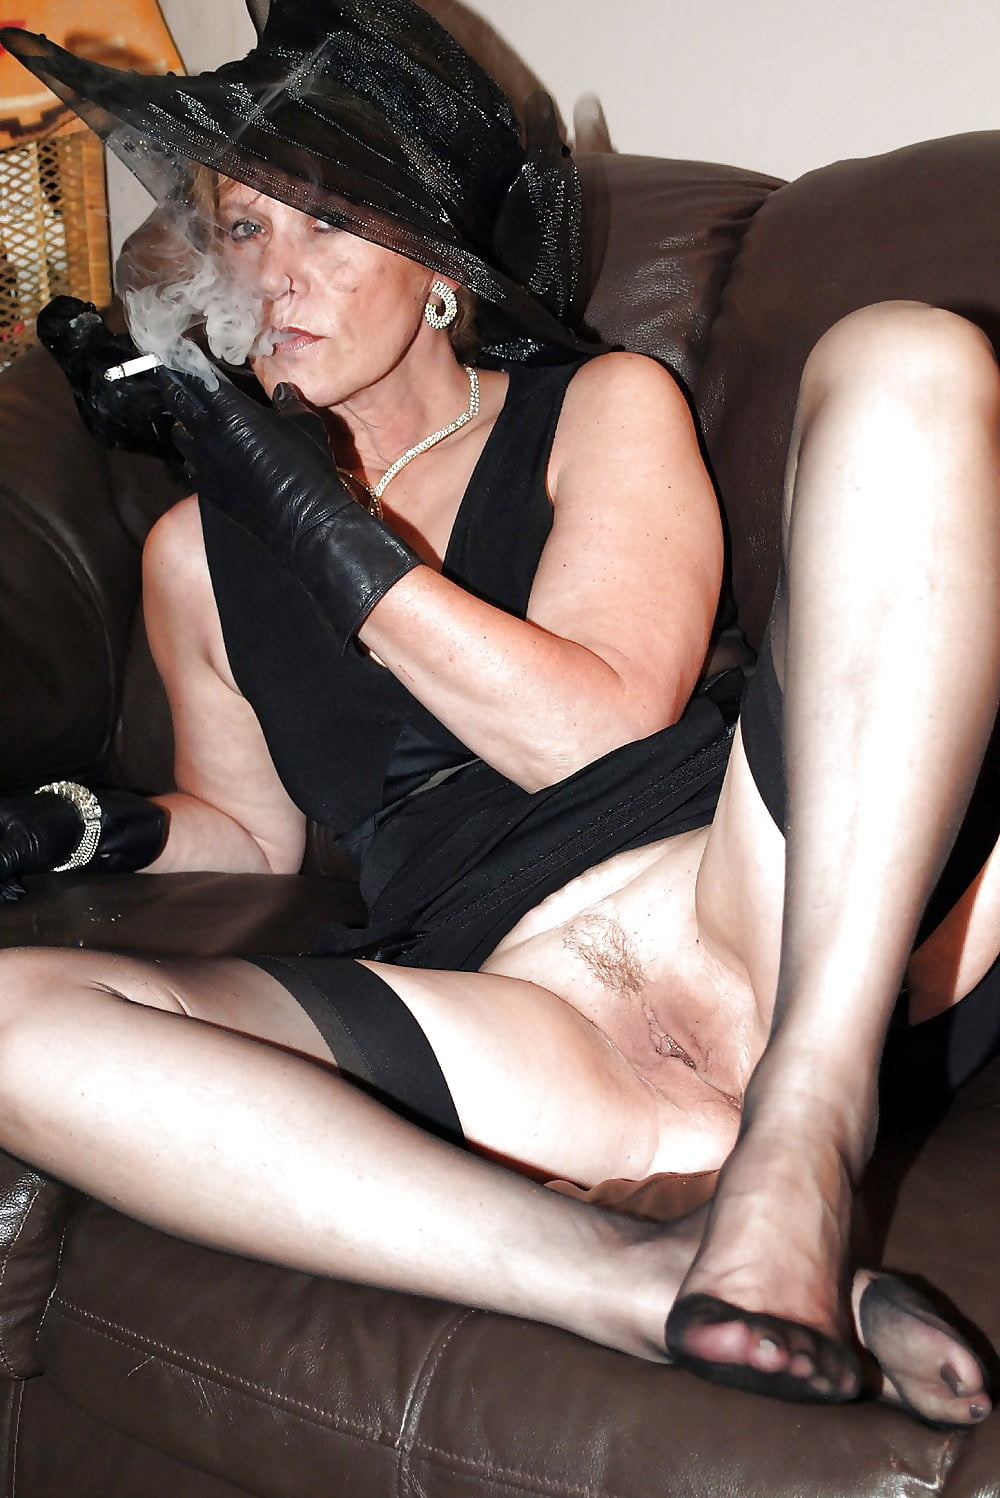 mature-women-smoking-galleries-best-female-actors-nude-pic